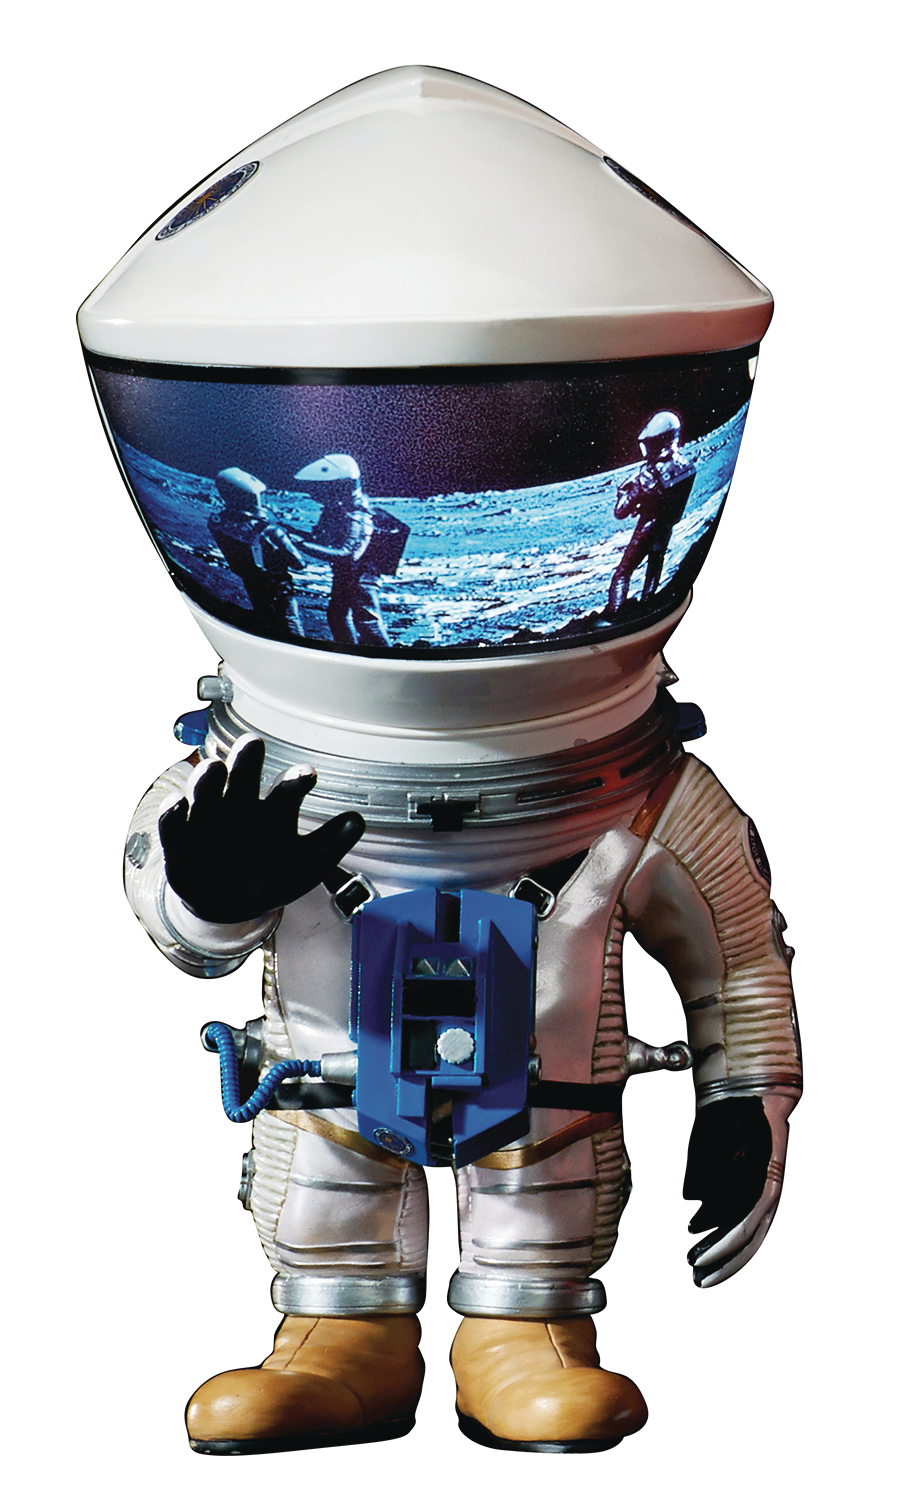 A SPACE ODYSSEY DF ASTRONAUT DEFO REAL SOFT VINYL SILVER VER